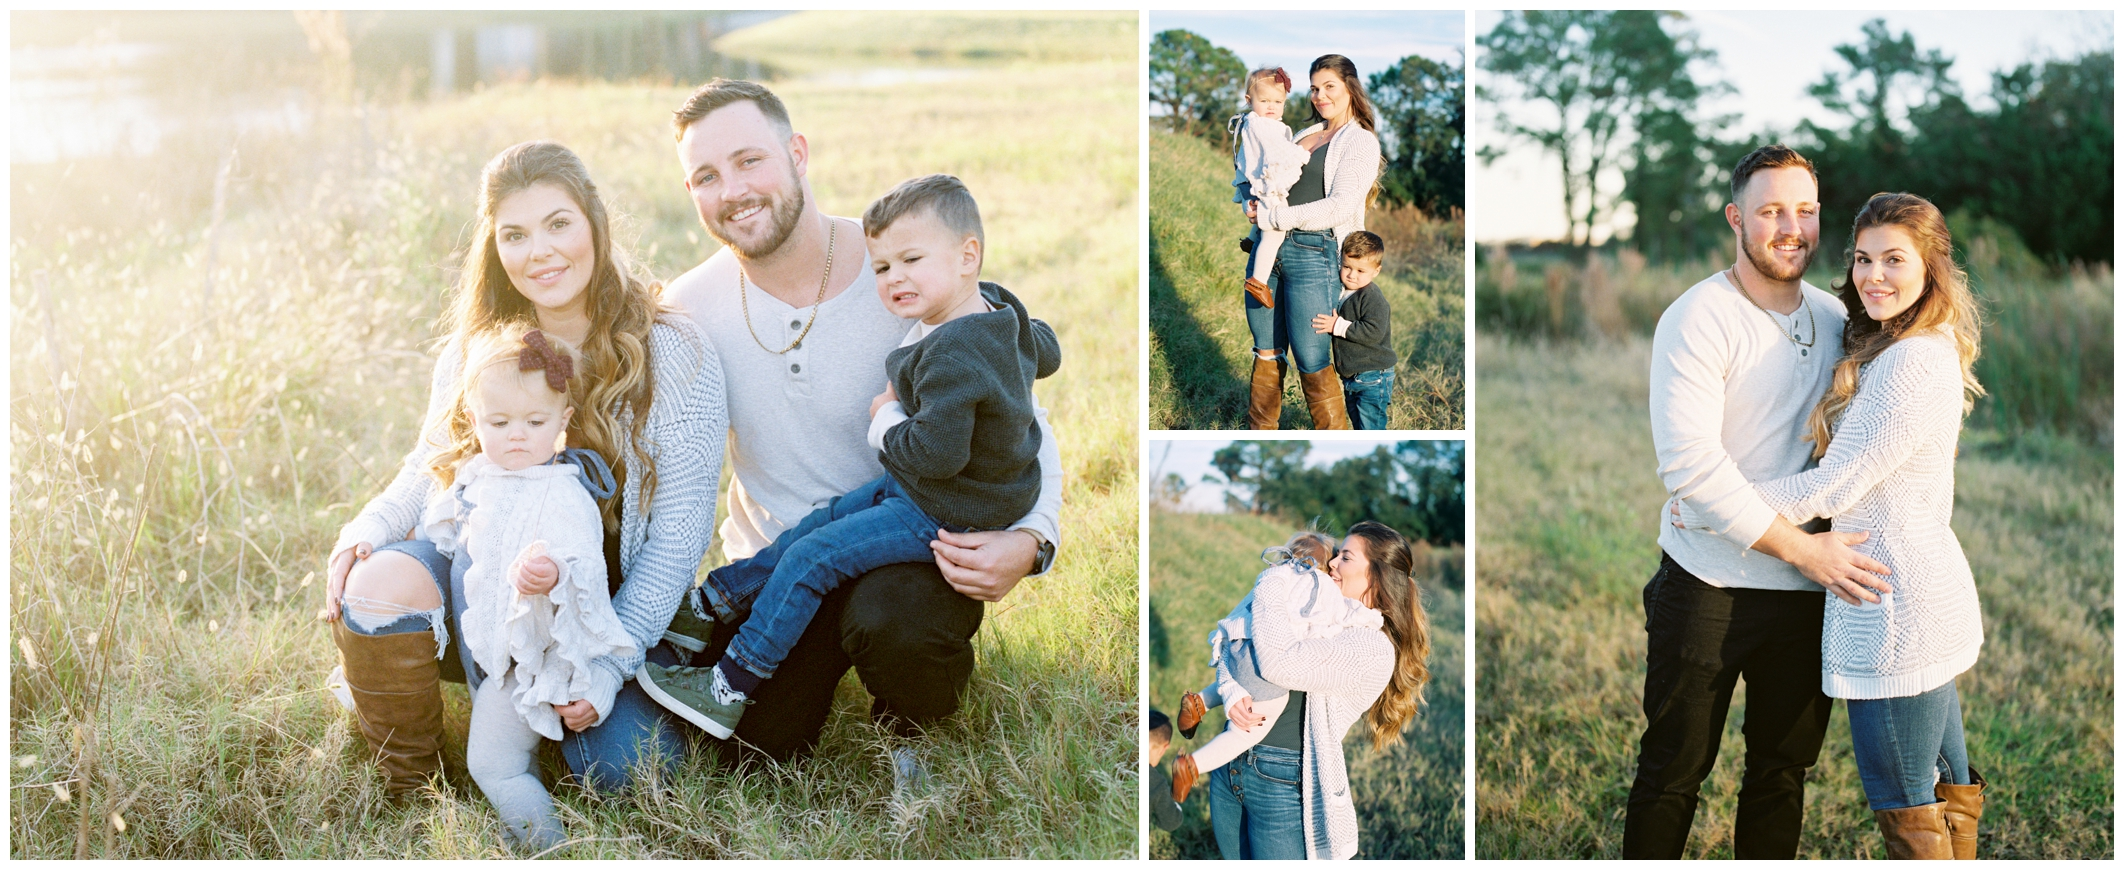 Lisa Silva Photography- Ponte Vedra Beach, St. Augustine and Jacksonville, Florida Fine Art Film Destination Wedding Photography- Family Lifestyle Session in St. Augustine_0027.jpg